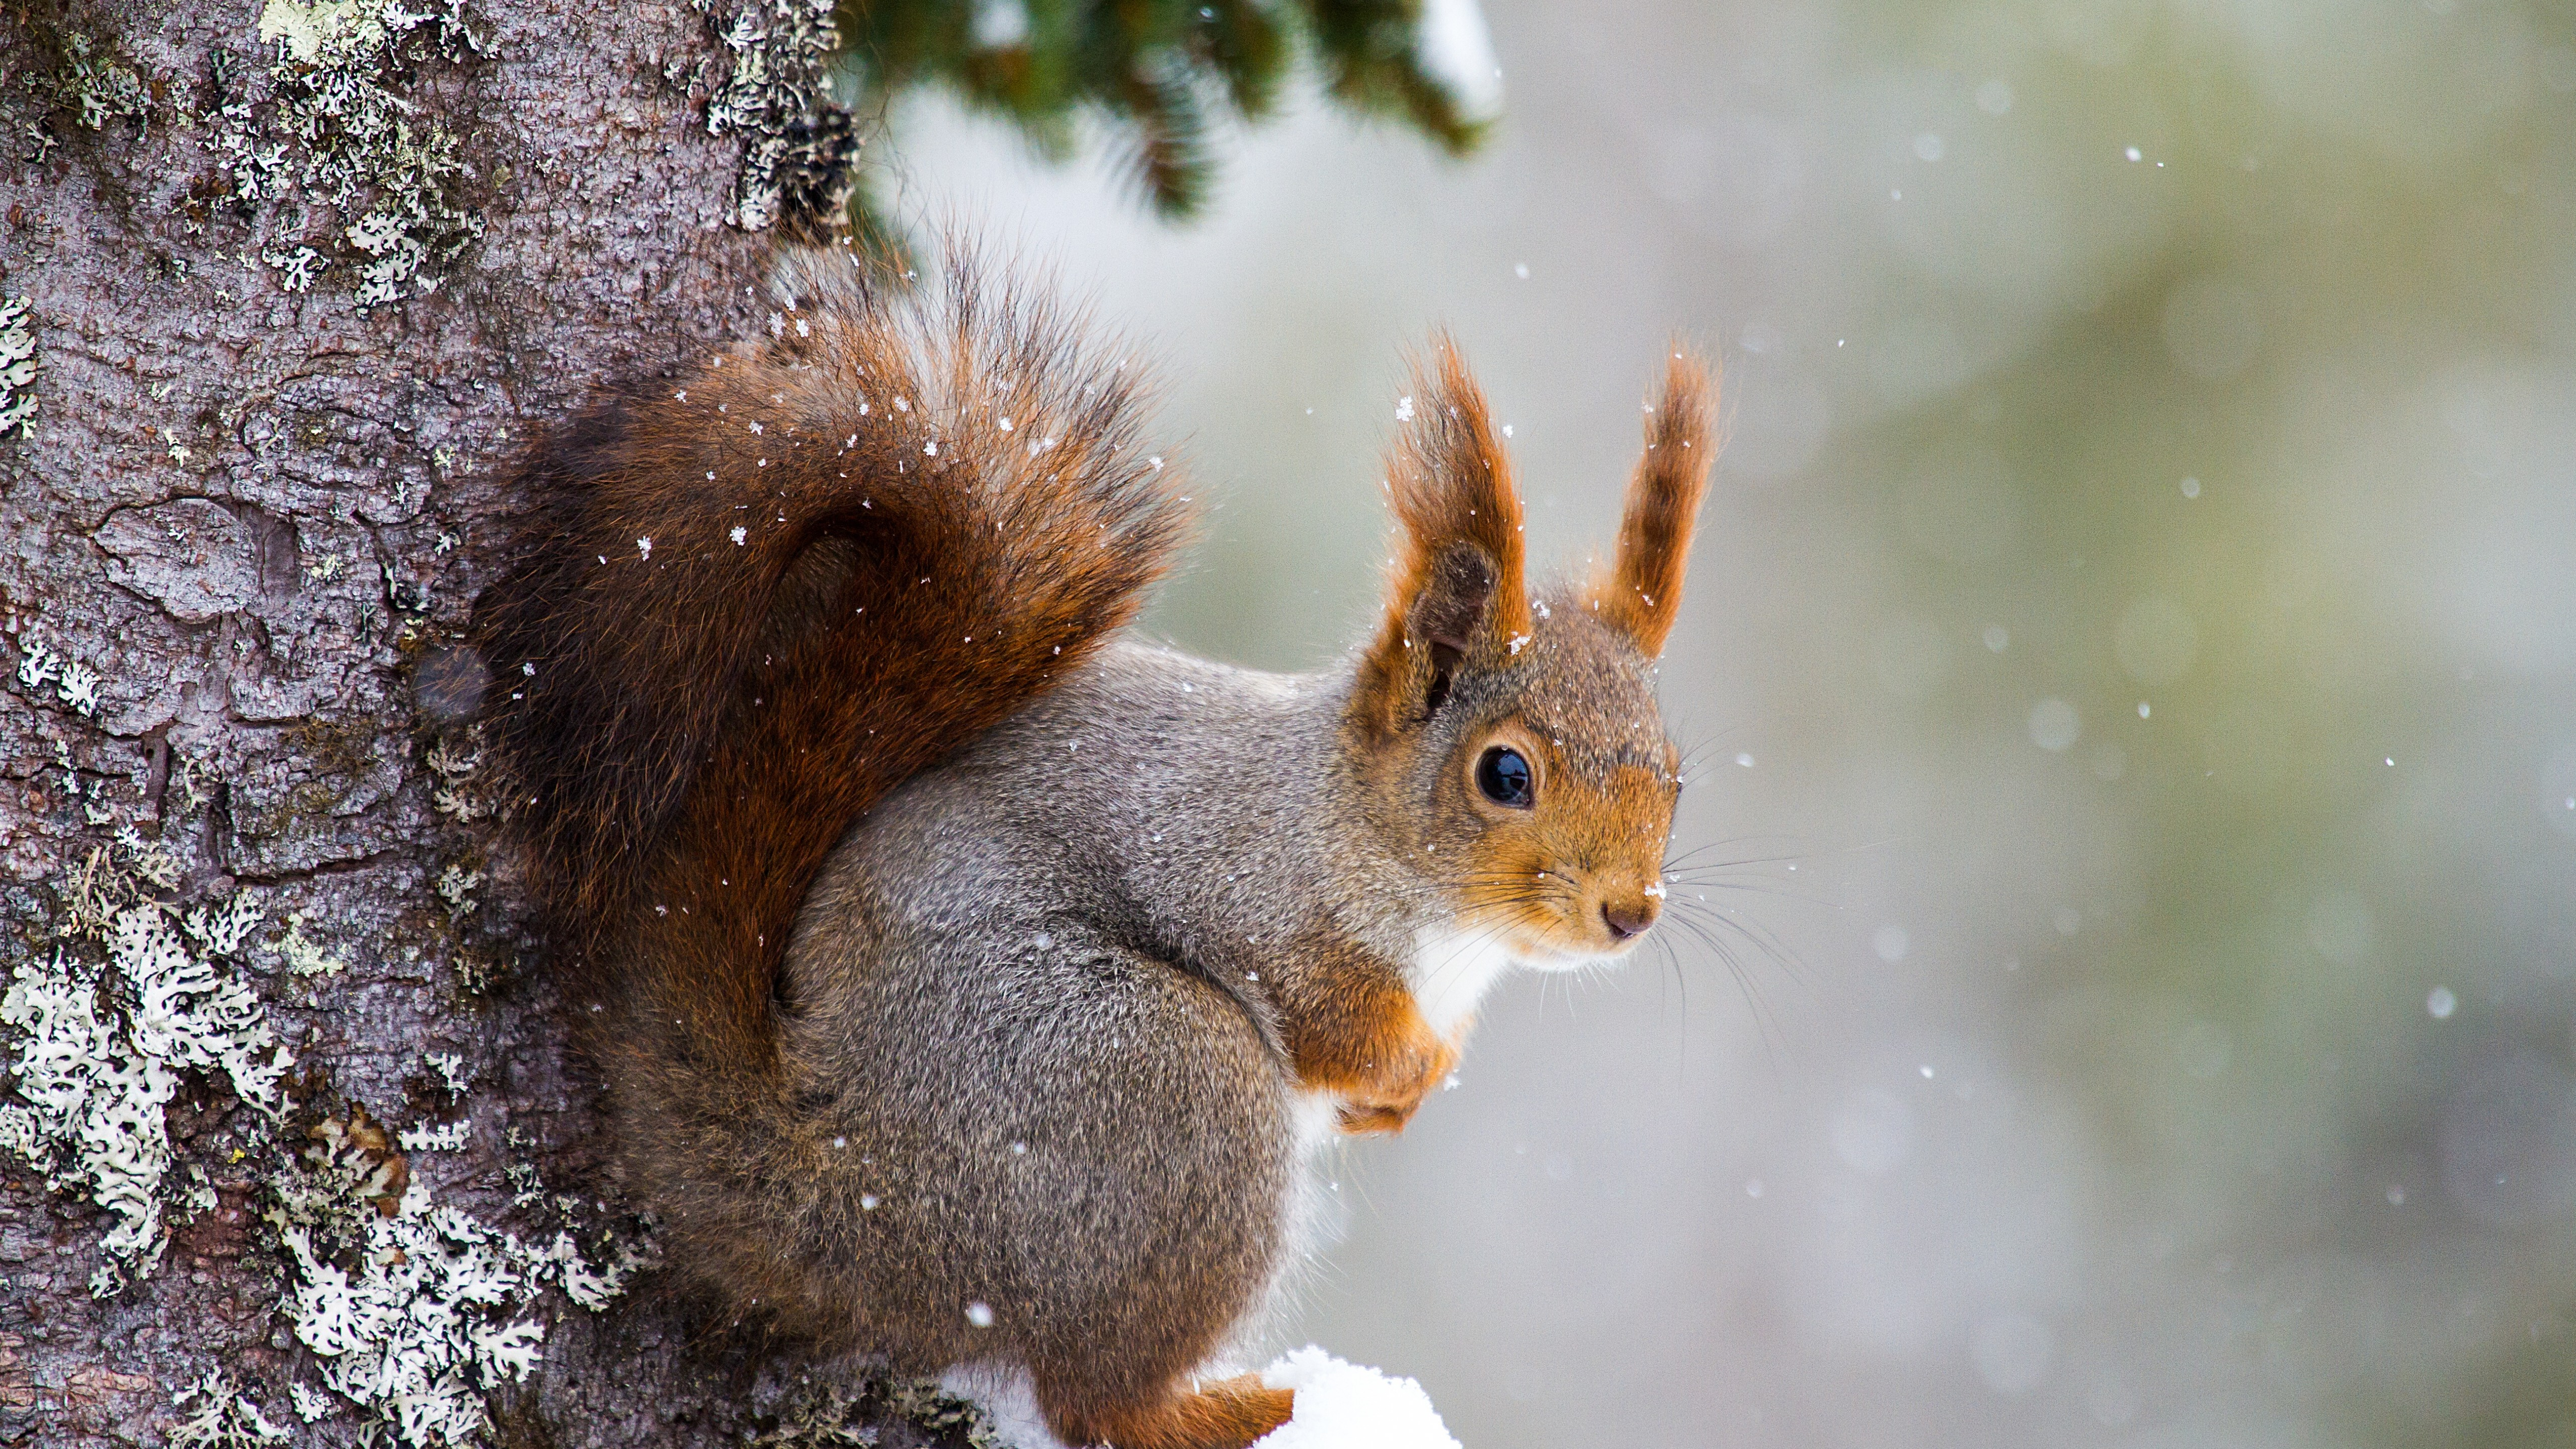 Best Cars And Bikes Wallpapers Wallpaper Squirrel Cute Animals Winter 5k Animals 17350